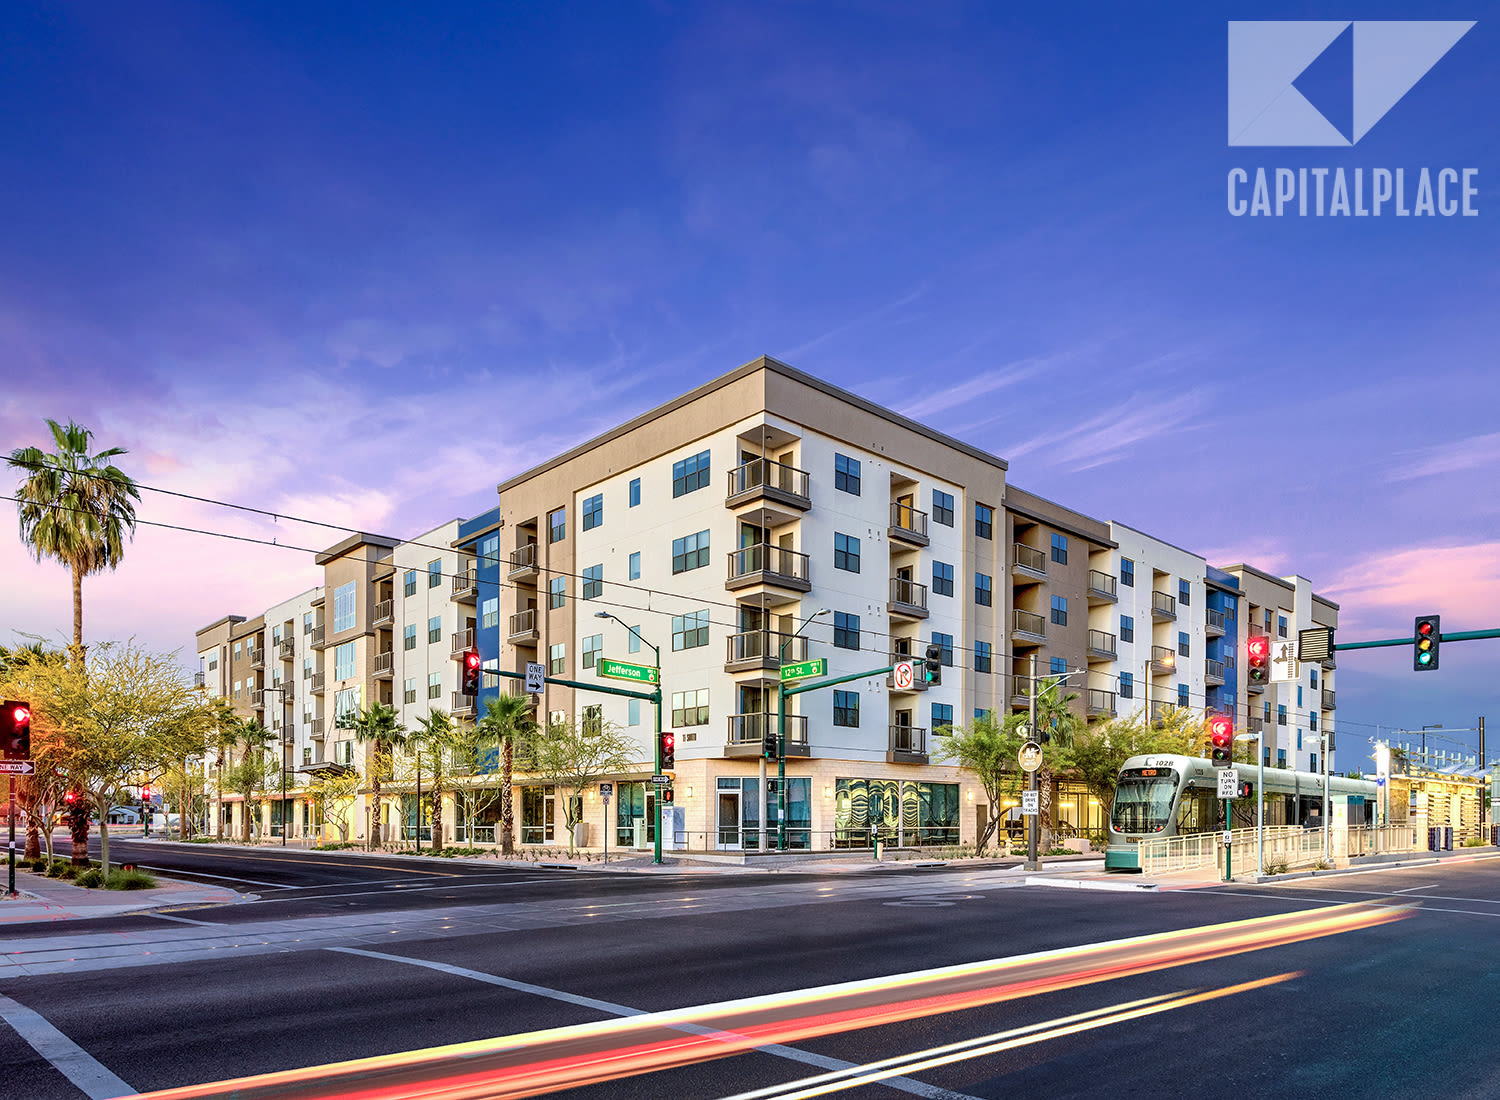 Capital Place apartments in Phoenix, Arizona